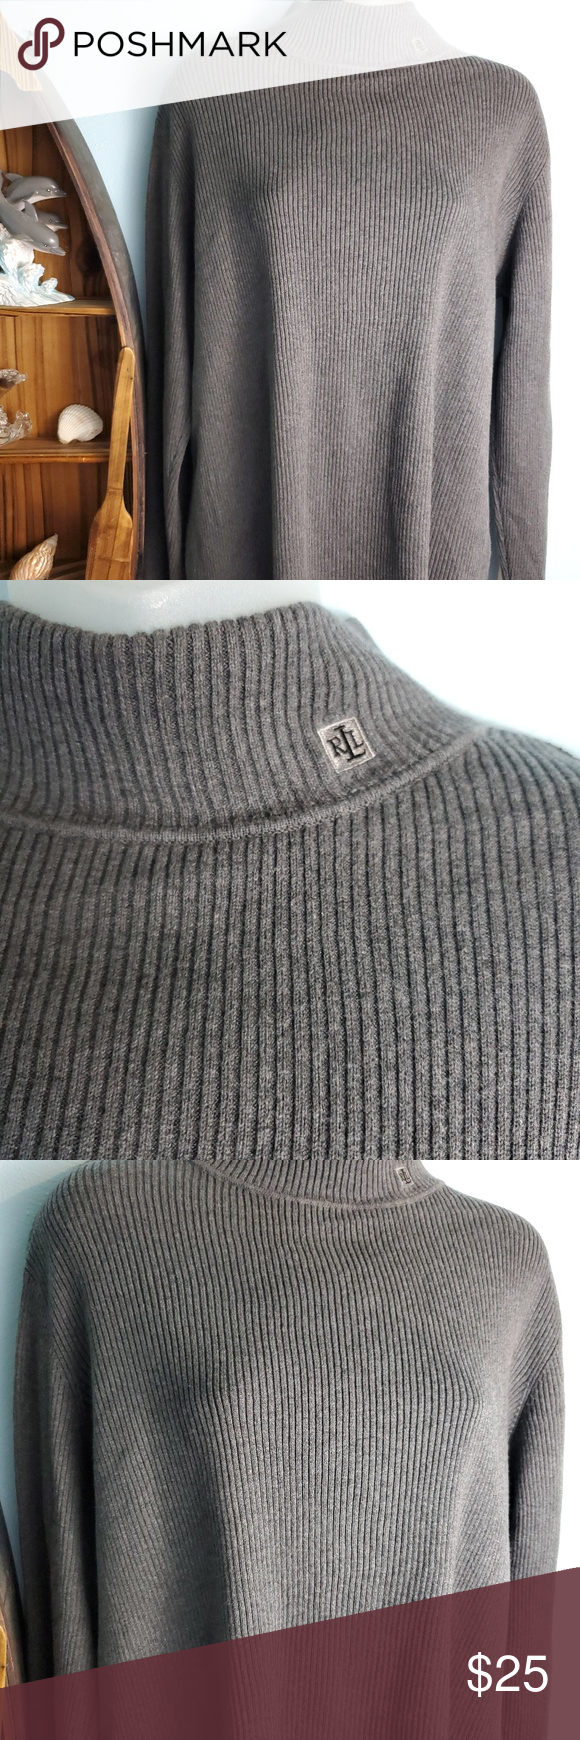 Ralph Lauren Sweater Great used condition. Ralph Lauren Sweaters Cowl & Turtlenecks #ralphlaurenwomensclothing